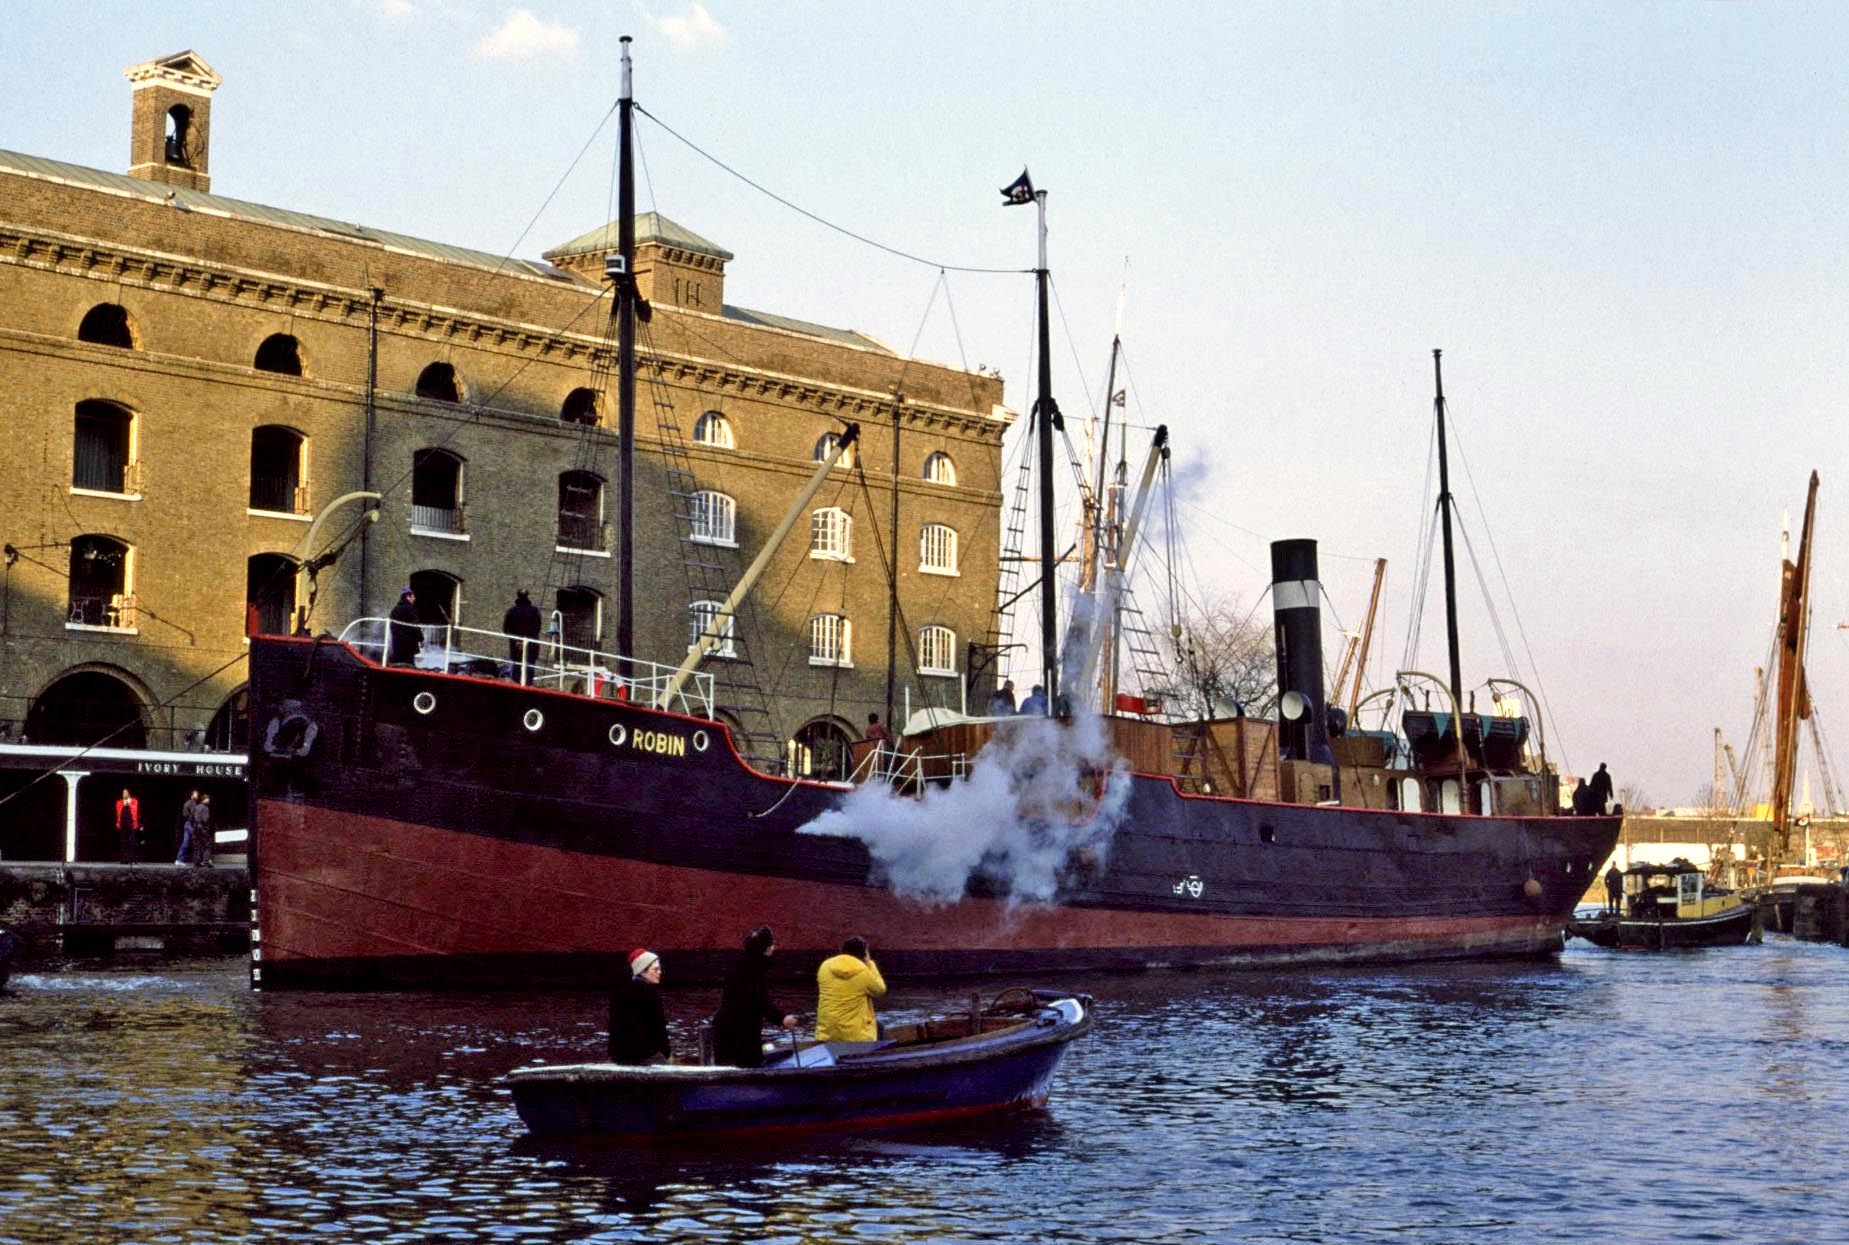 Arrival at St.Katherine's Dock 1980